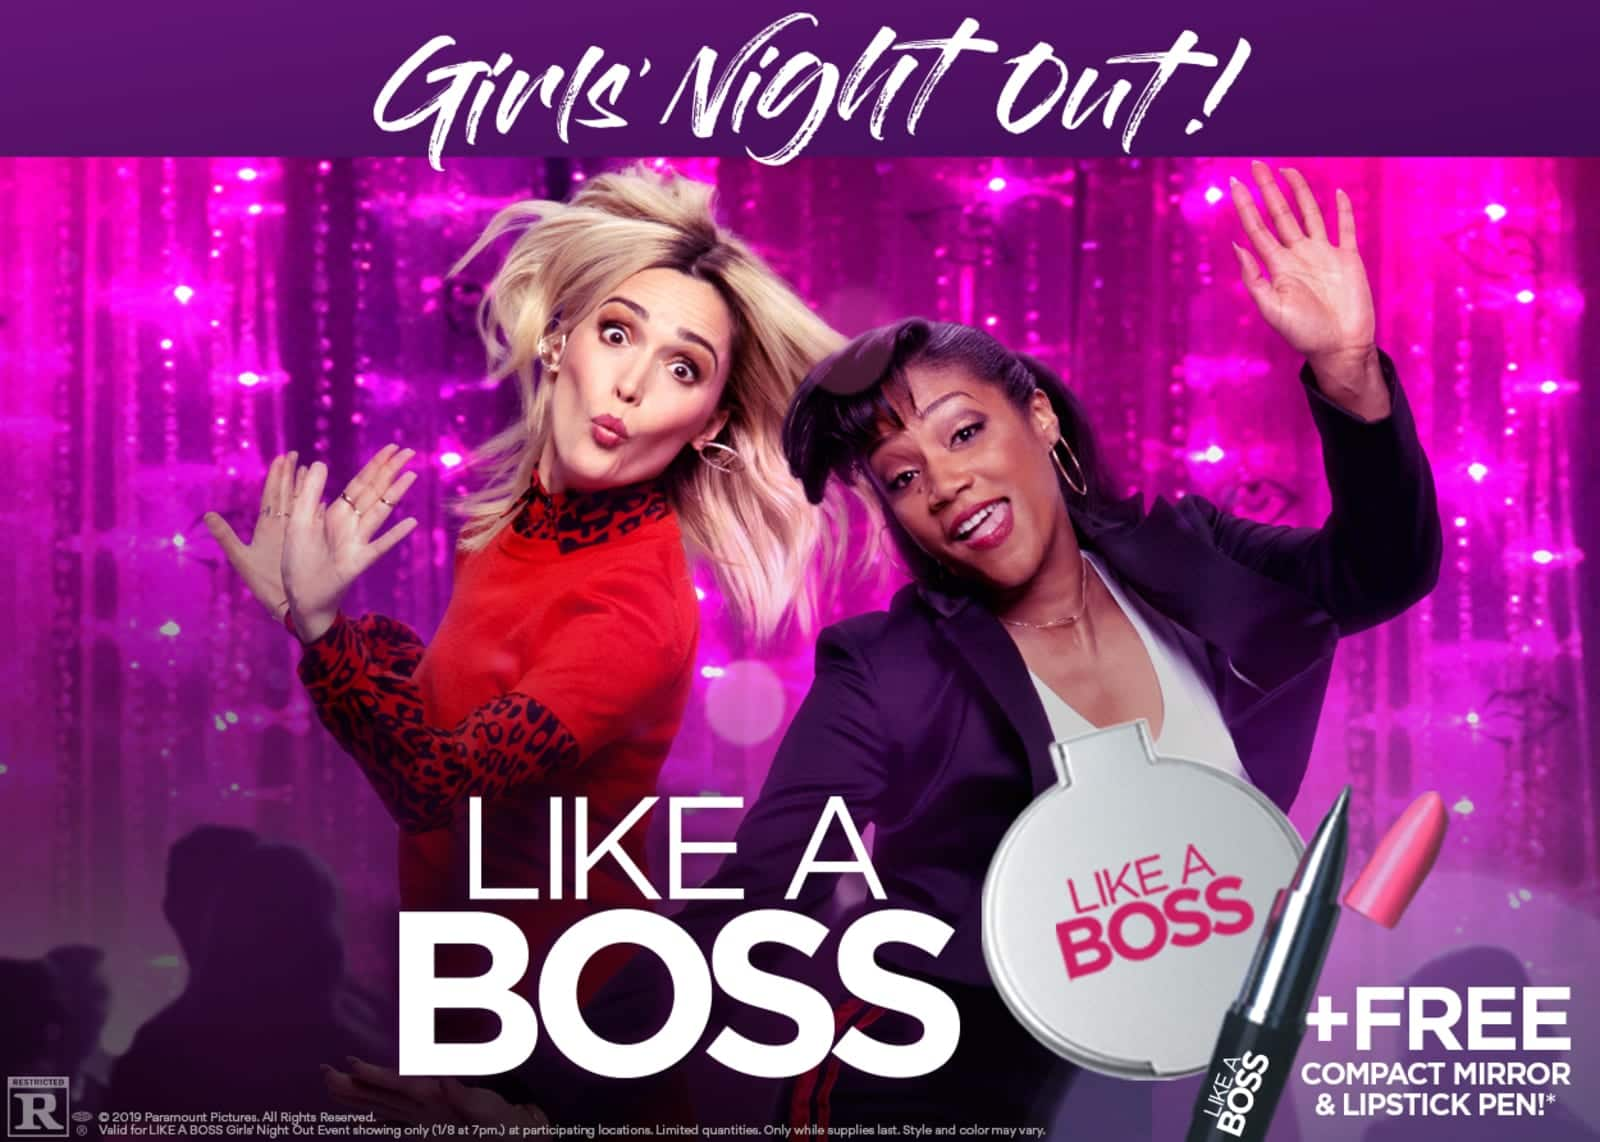 Buy a Movie Ticket for Like A Boss on 1/8 (Girls Night Out), Get Free Compact Mirror & Lipstick Pen